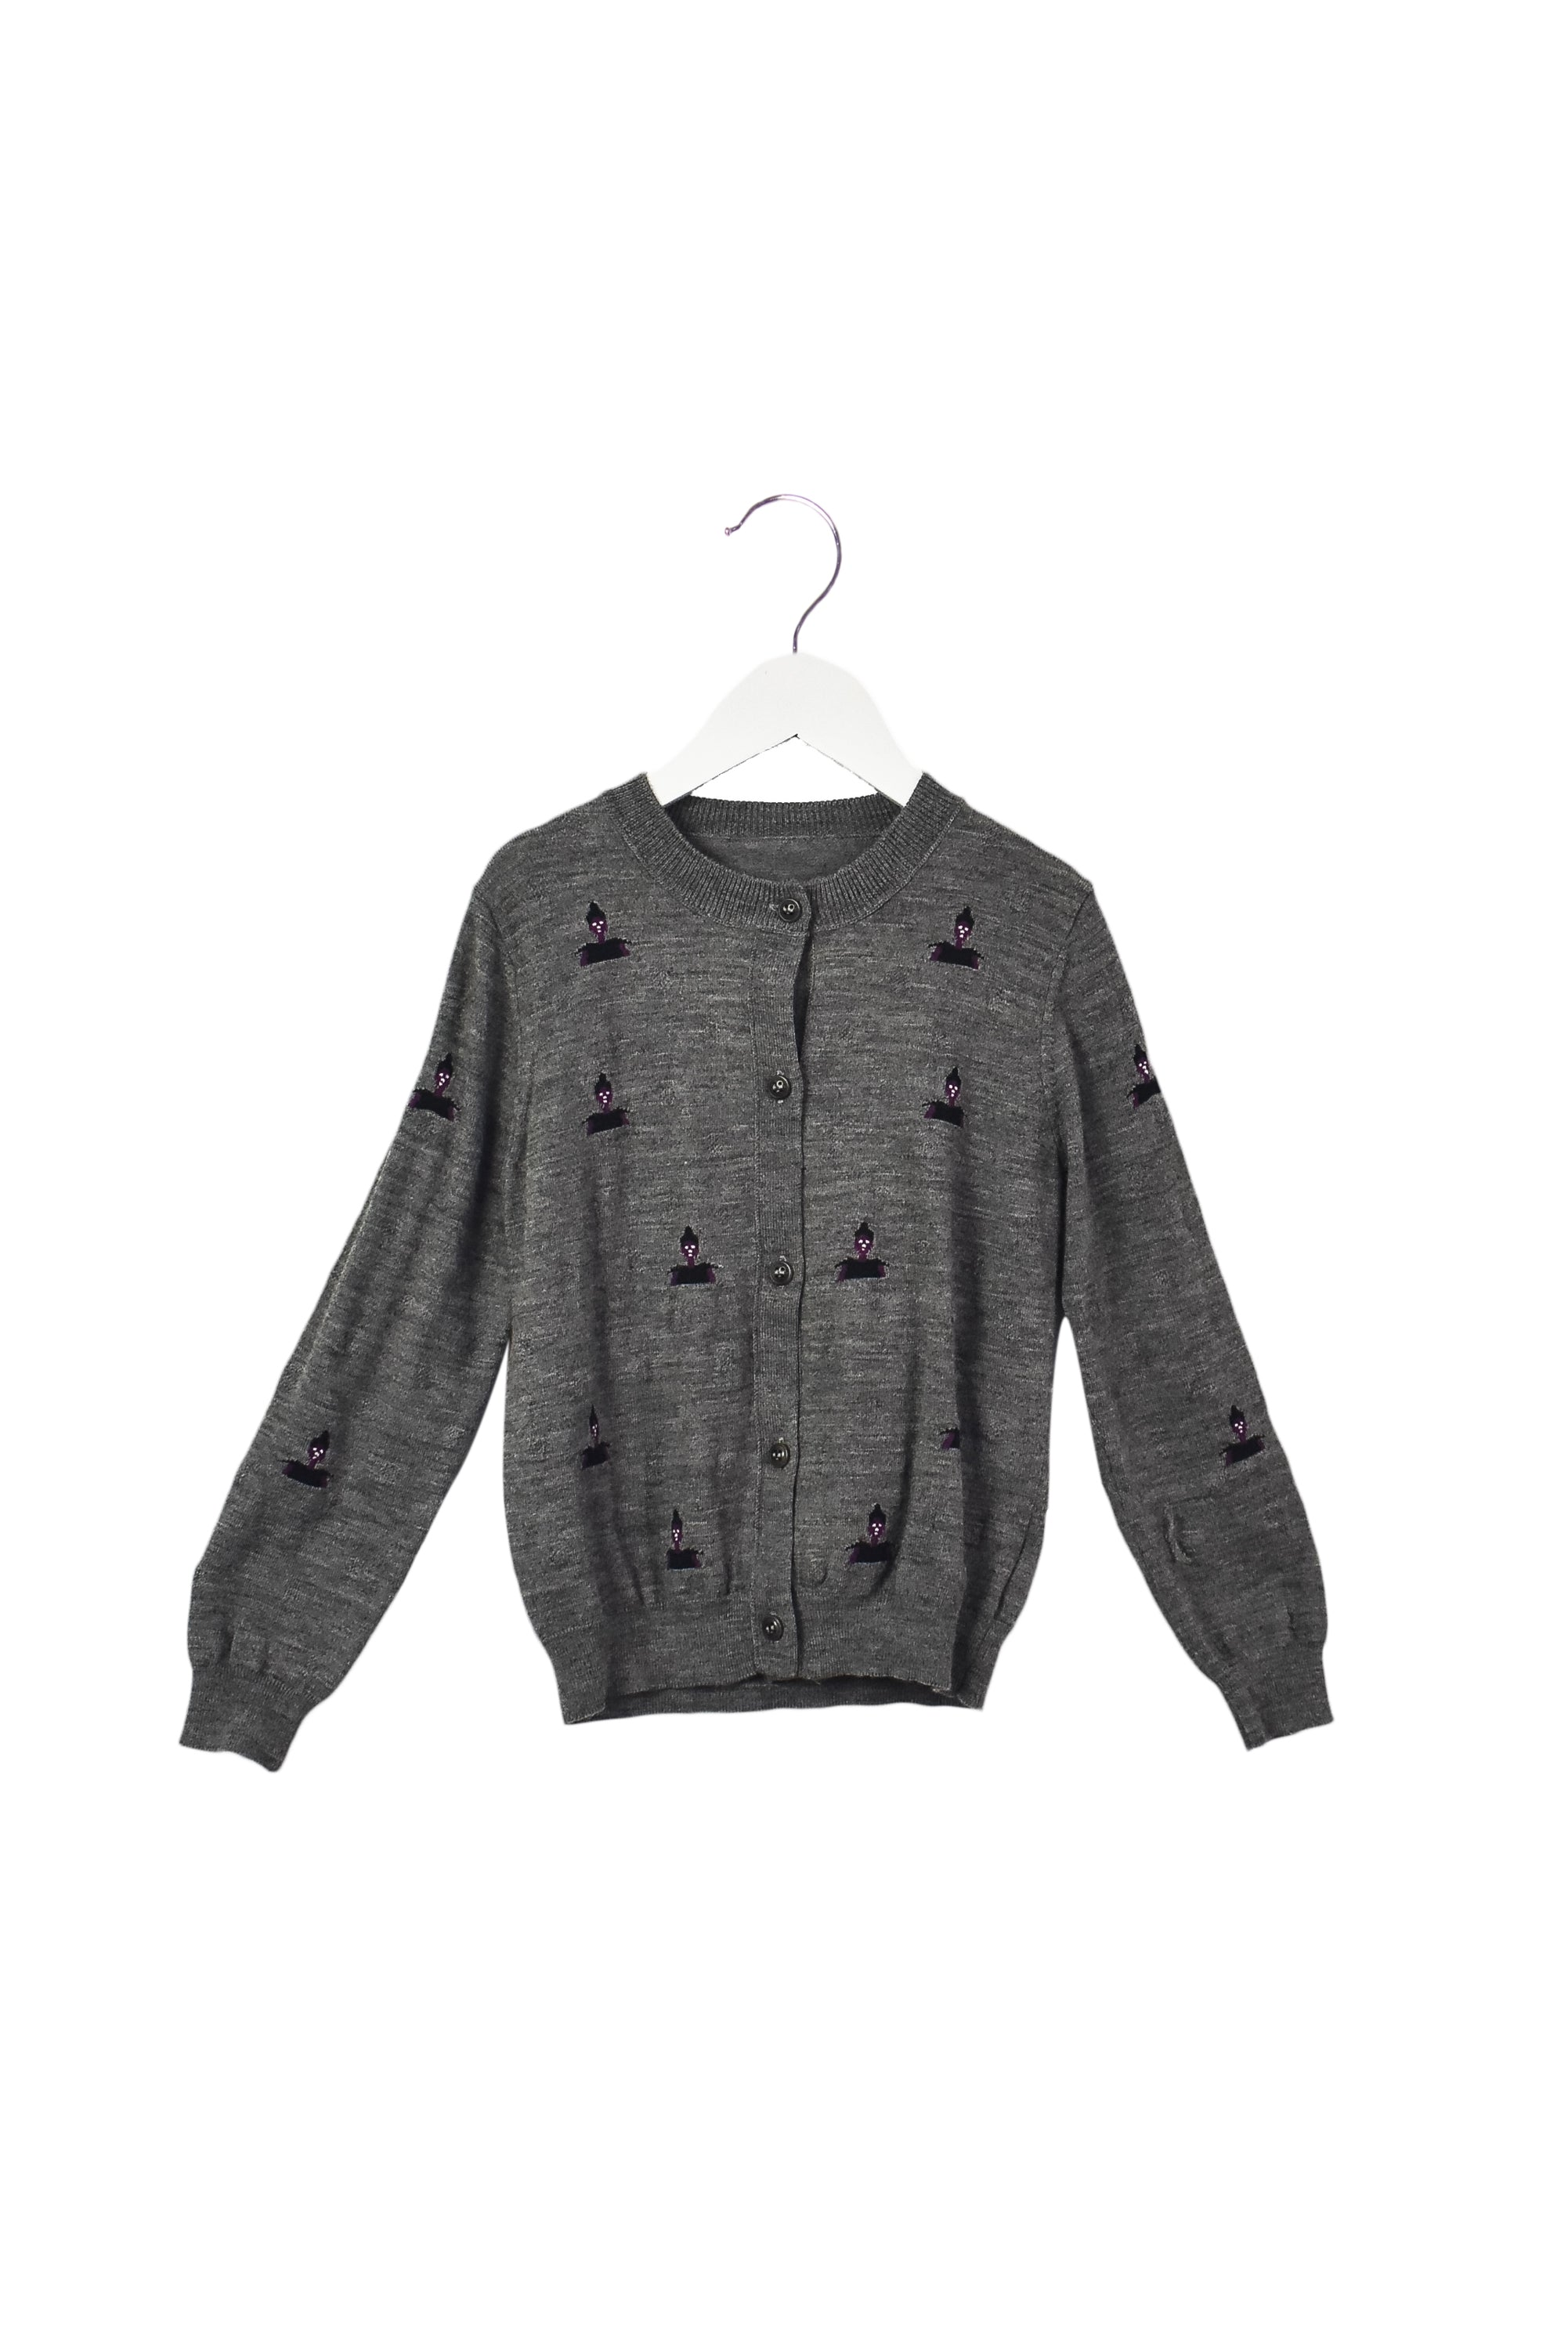 10033645 jnby by JNBY Kids~Cardigan 5T at Retykle